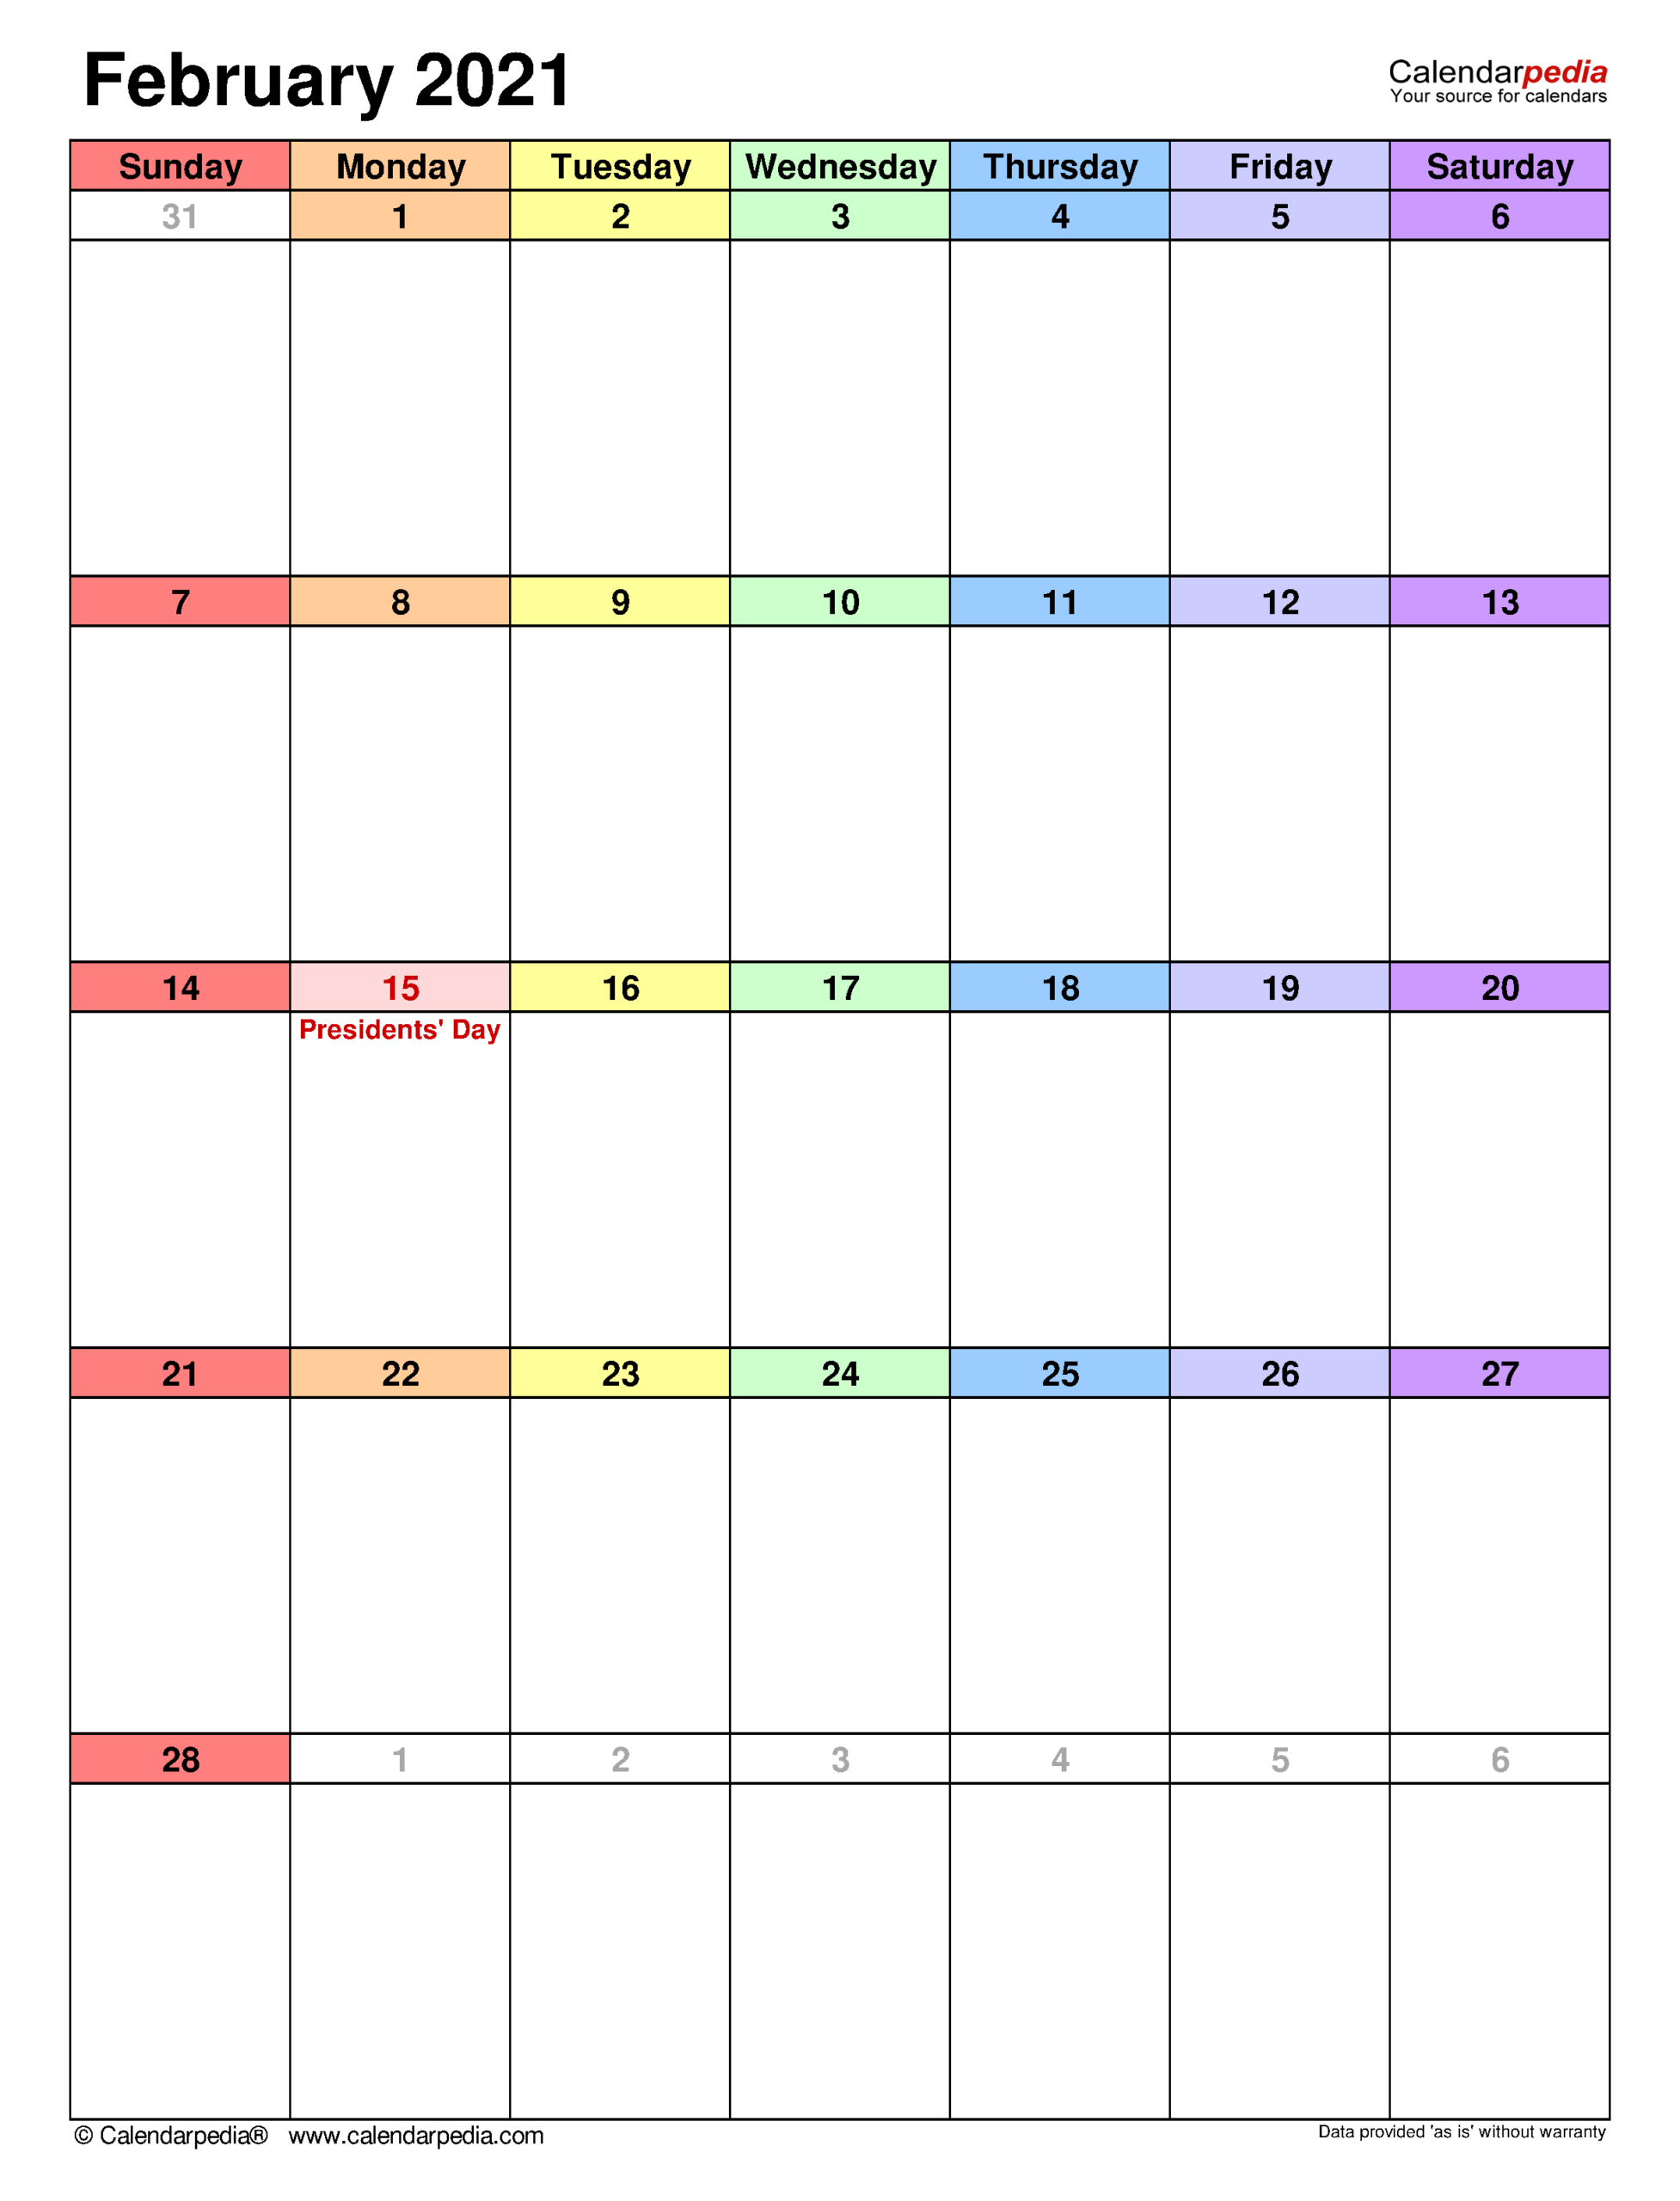 February 2021 Calendar | Templates For Word, Excel And Pdf regarding Fillable Calendar Templates 2021